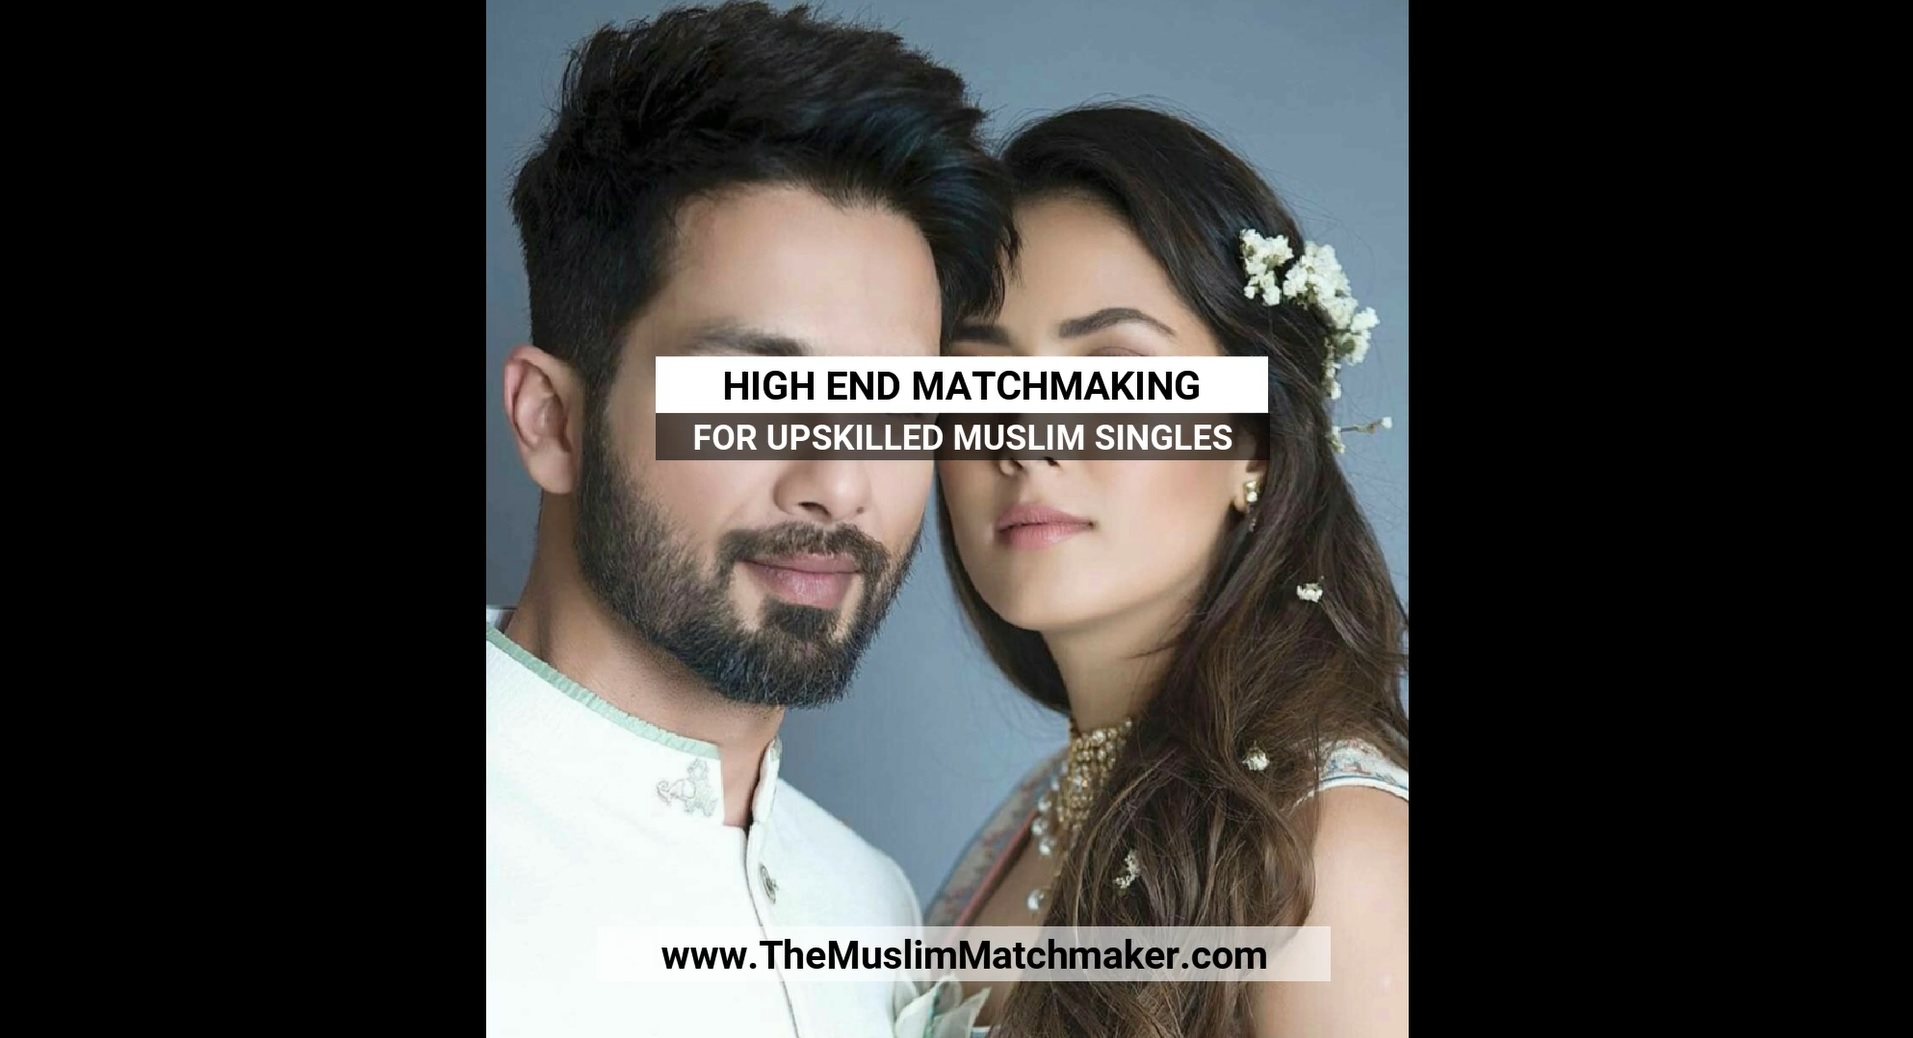 Muslim Dating in Manchester - LoveHabibi